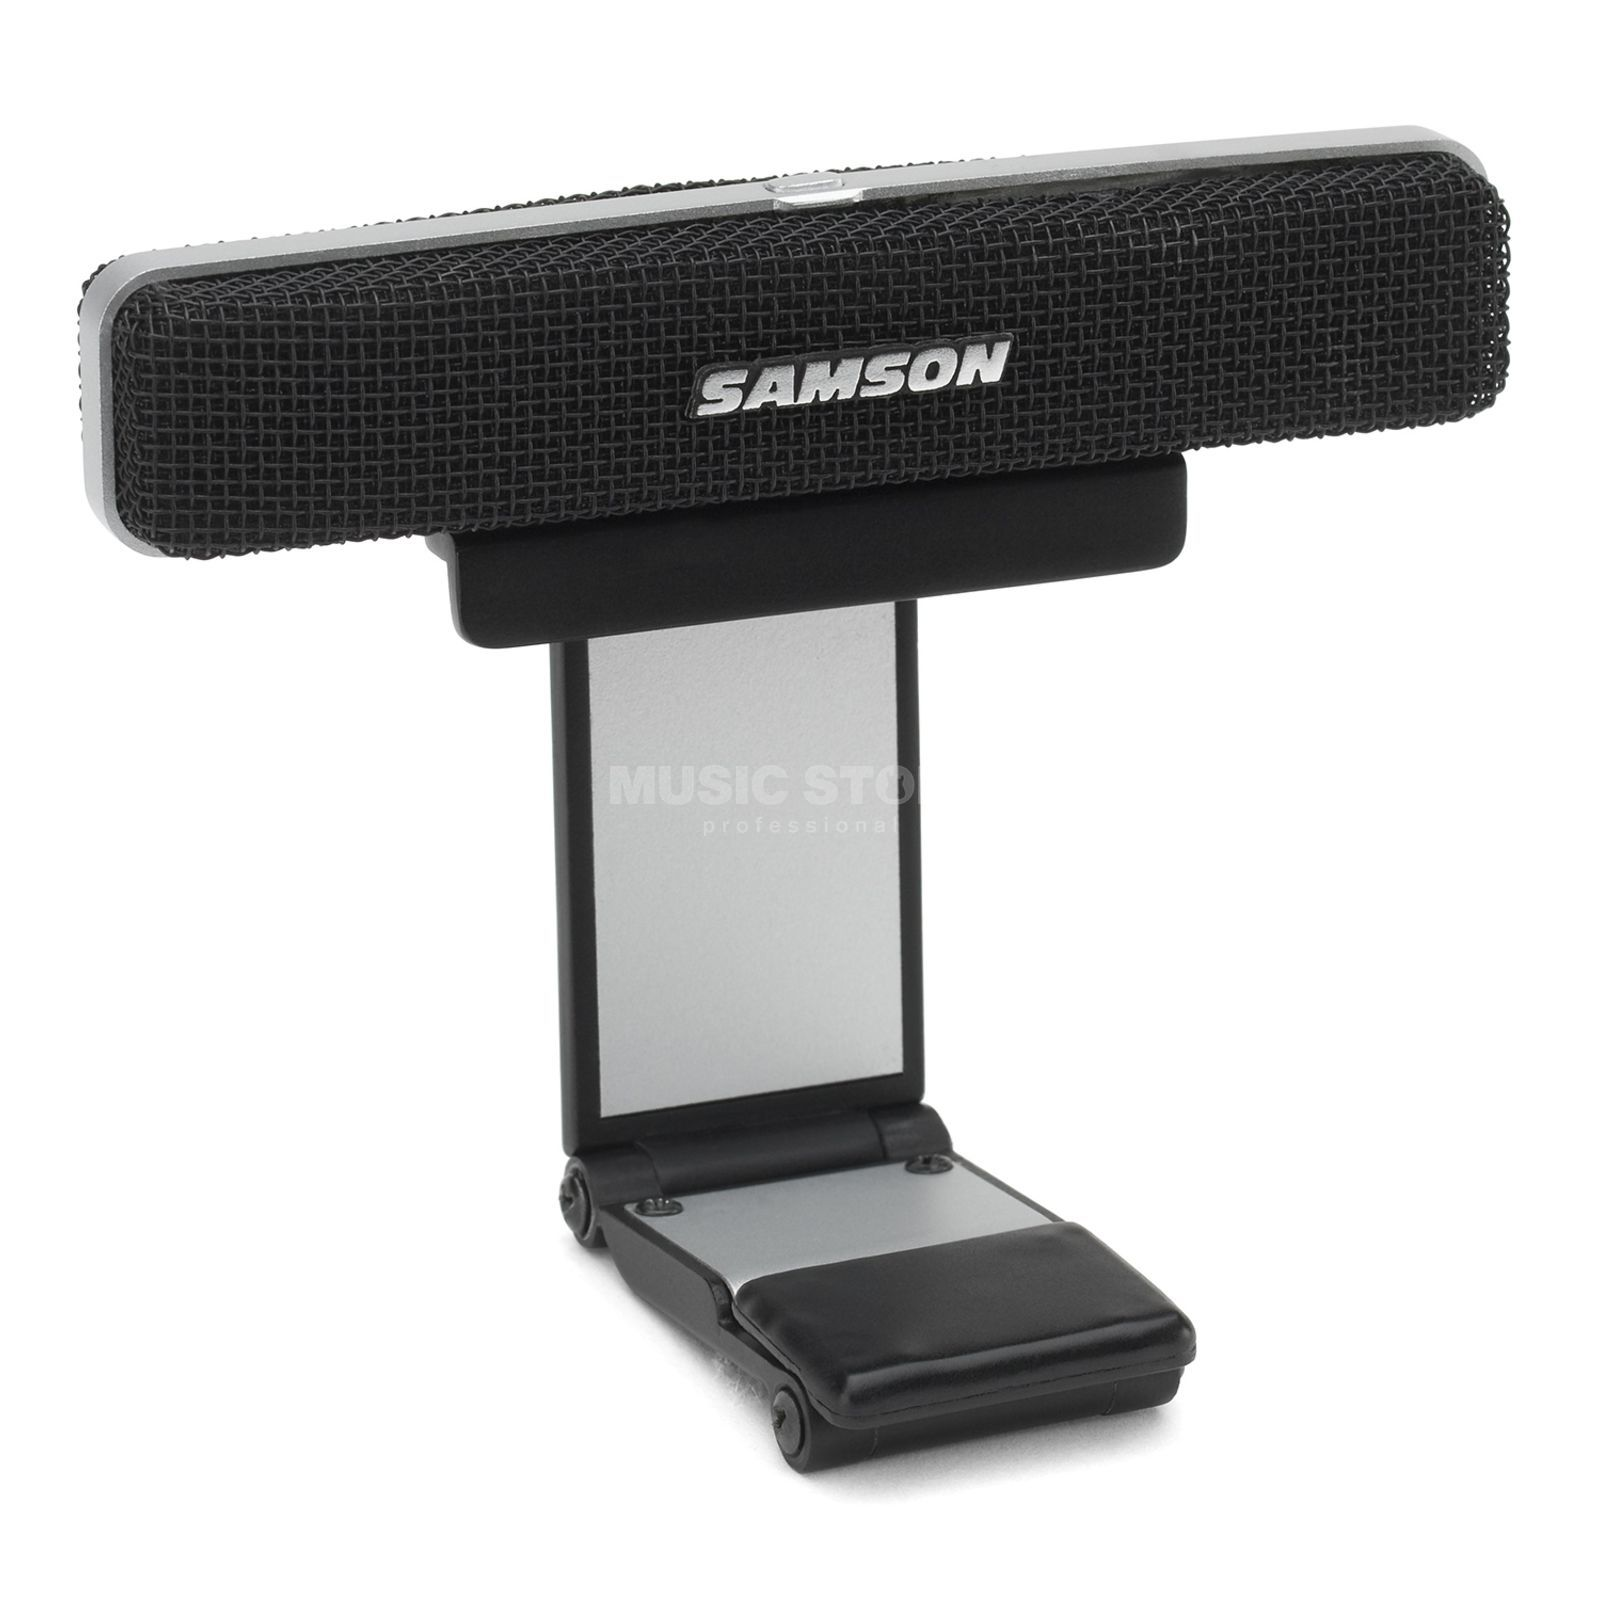 Samson GoMic Connect USB Mikrofon lieferbar/available July 2015 Produktbillede